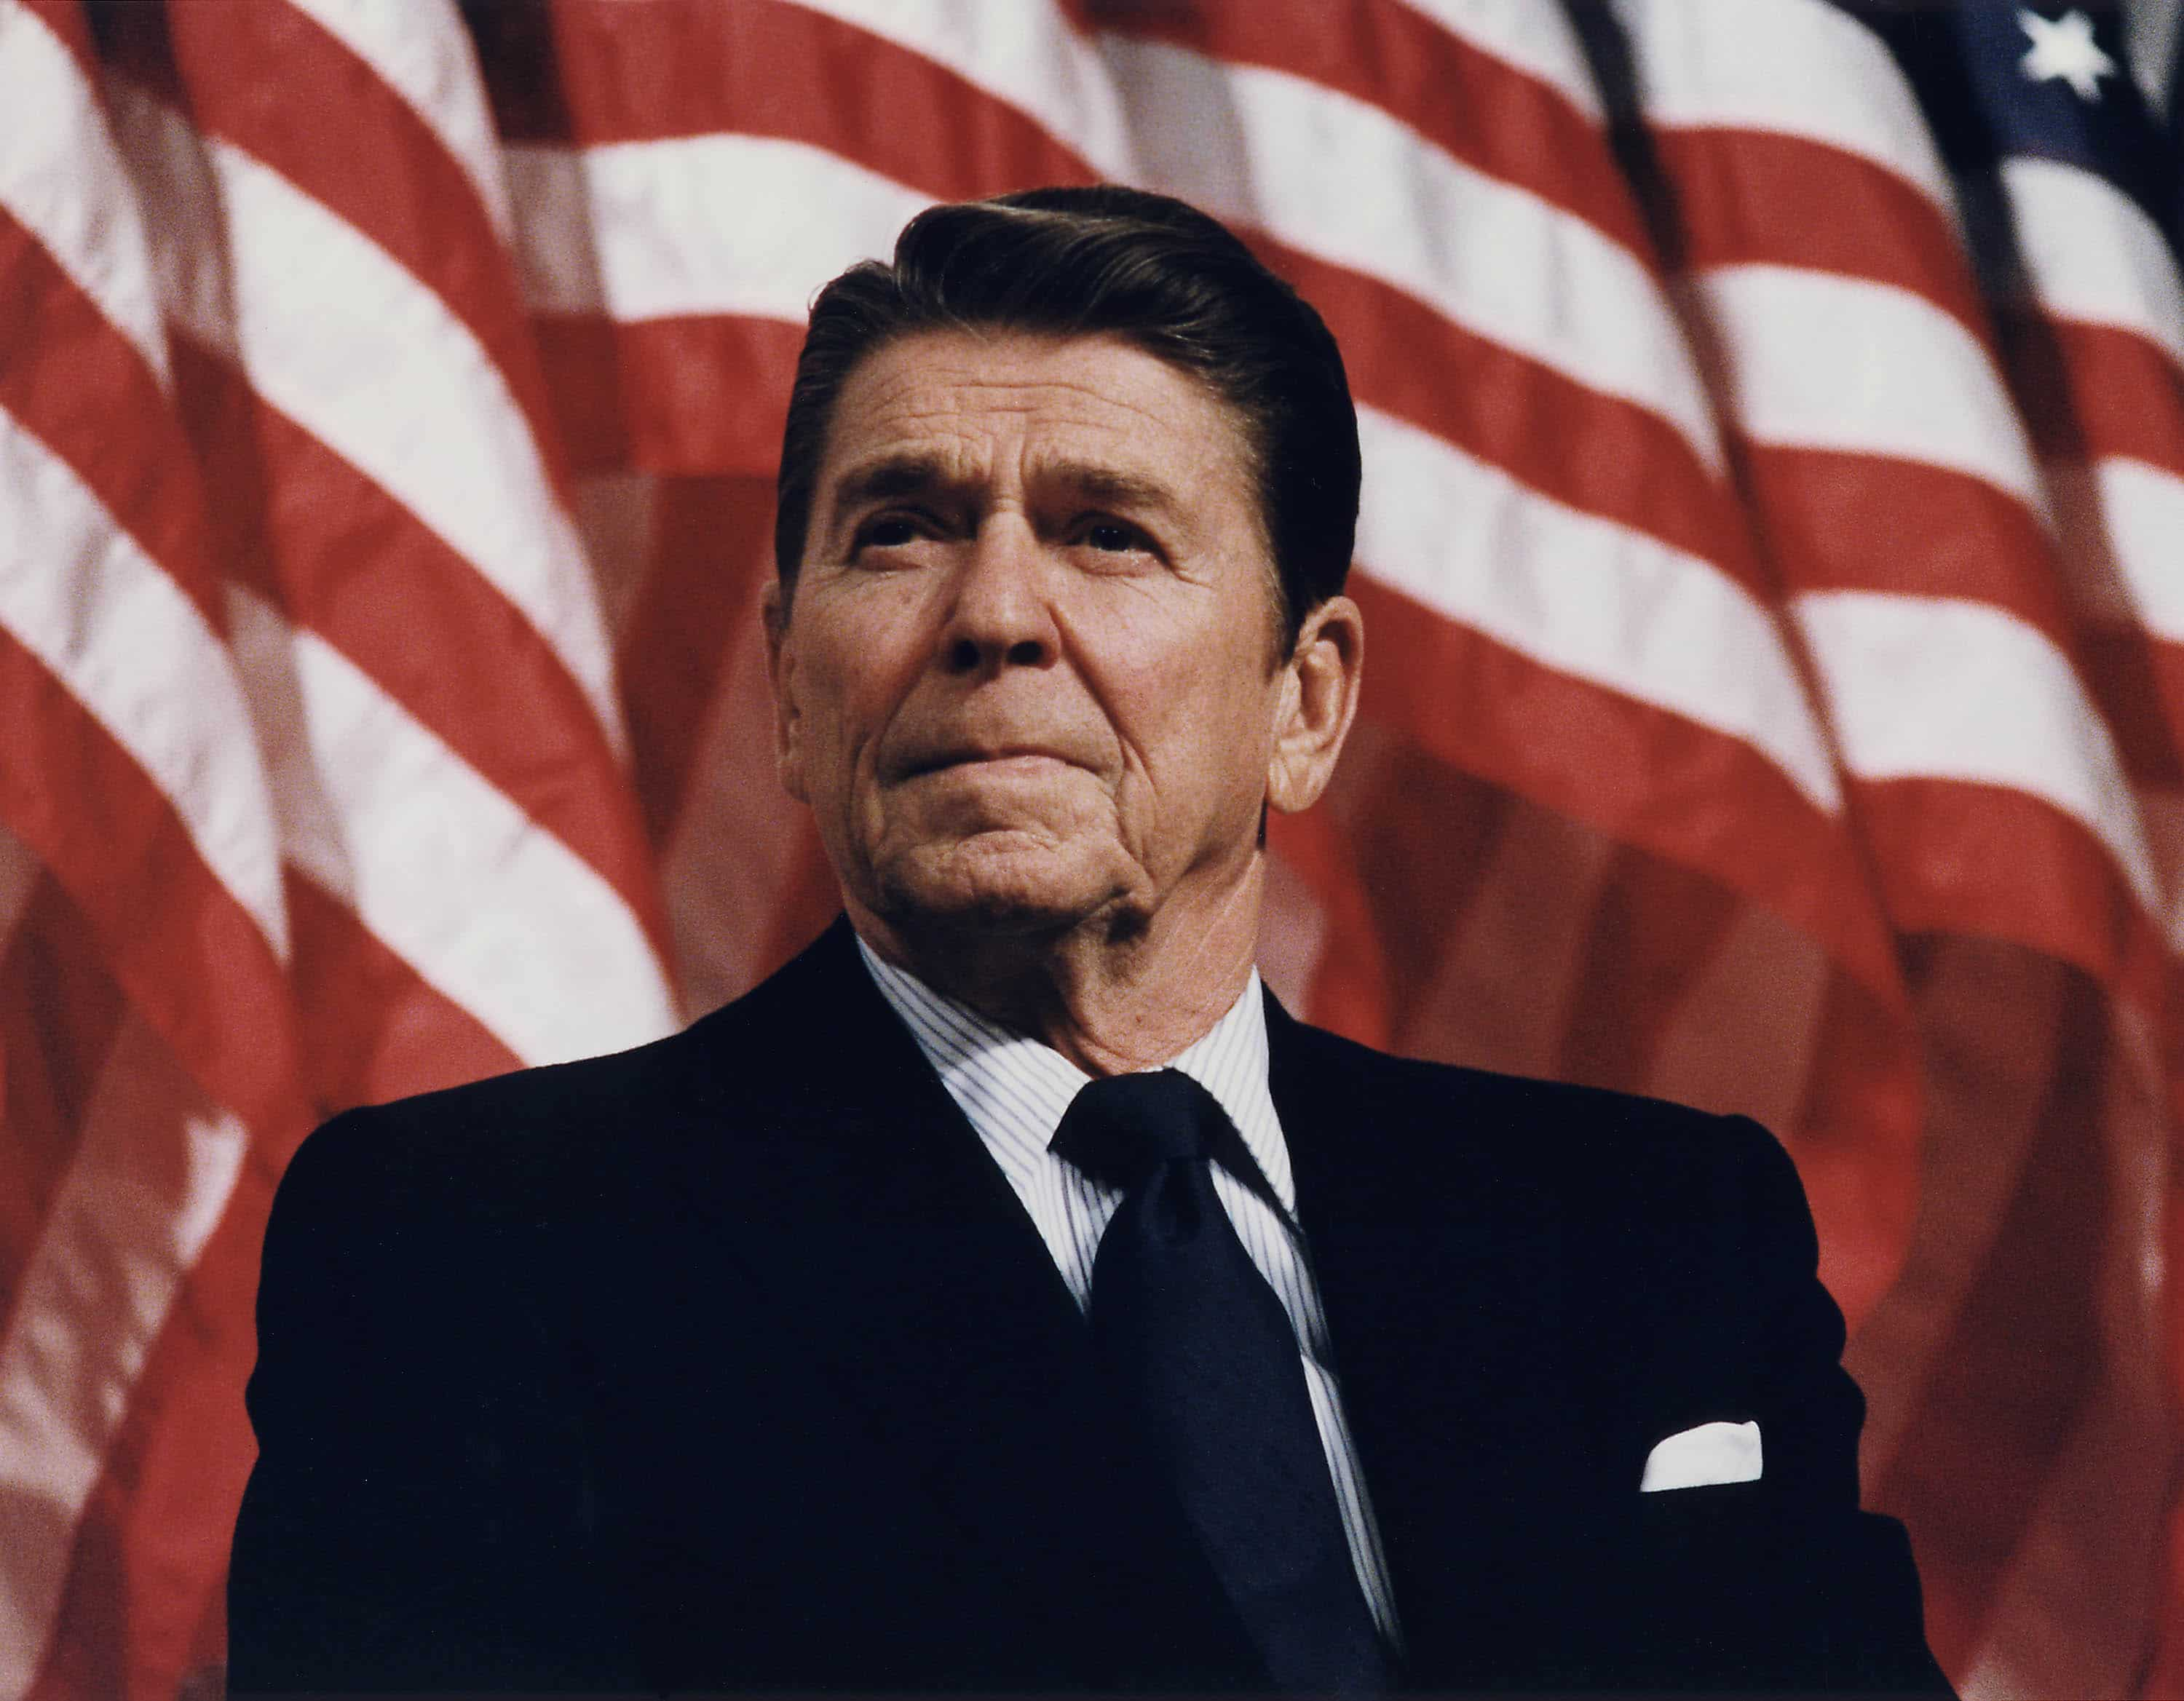 reagan-at-durenberger-rally 25 of the Greatest Self-Made Men in American History